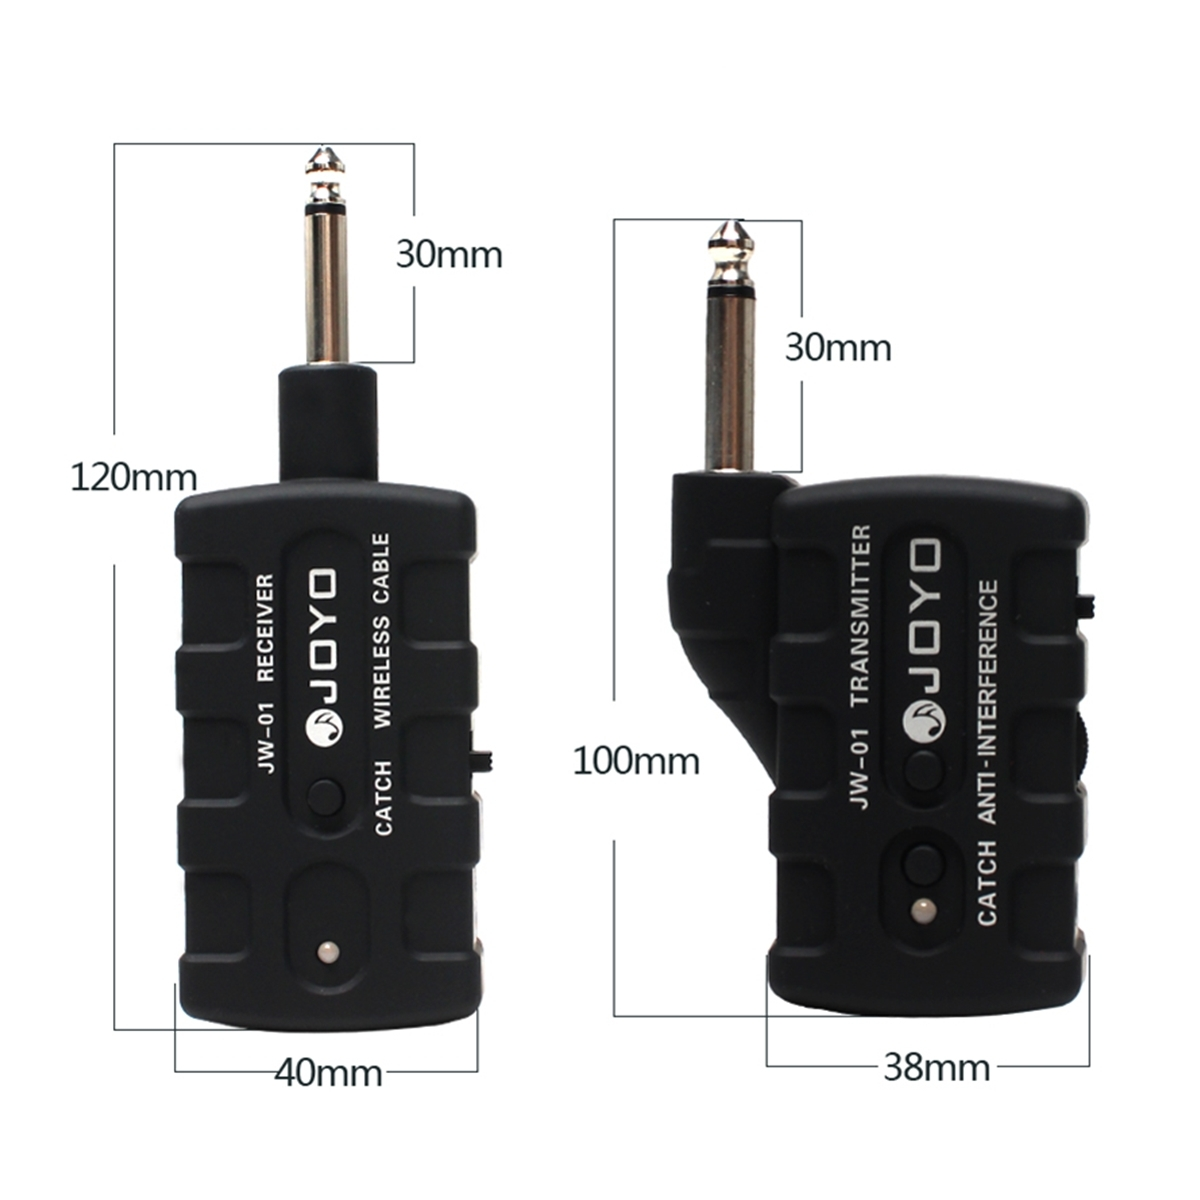 JOYO JW-01 Guitar Digital Wireless Cable Audio Transmitter Receiver Guitar Bass Keyboards Rechargeable Low Noise Portability